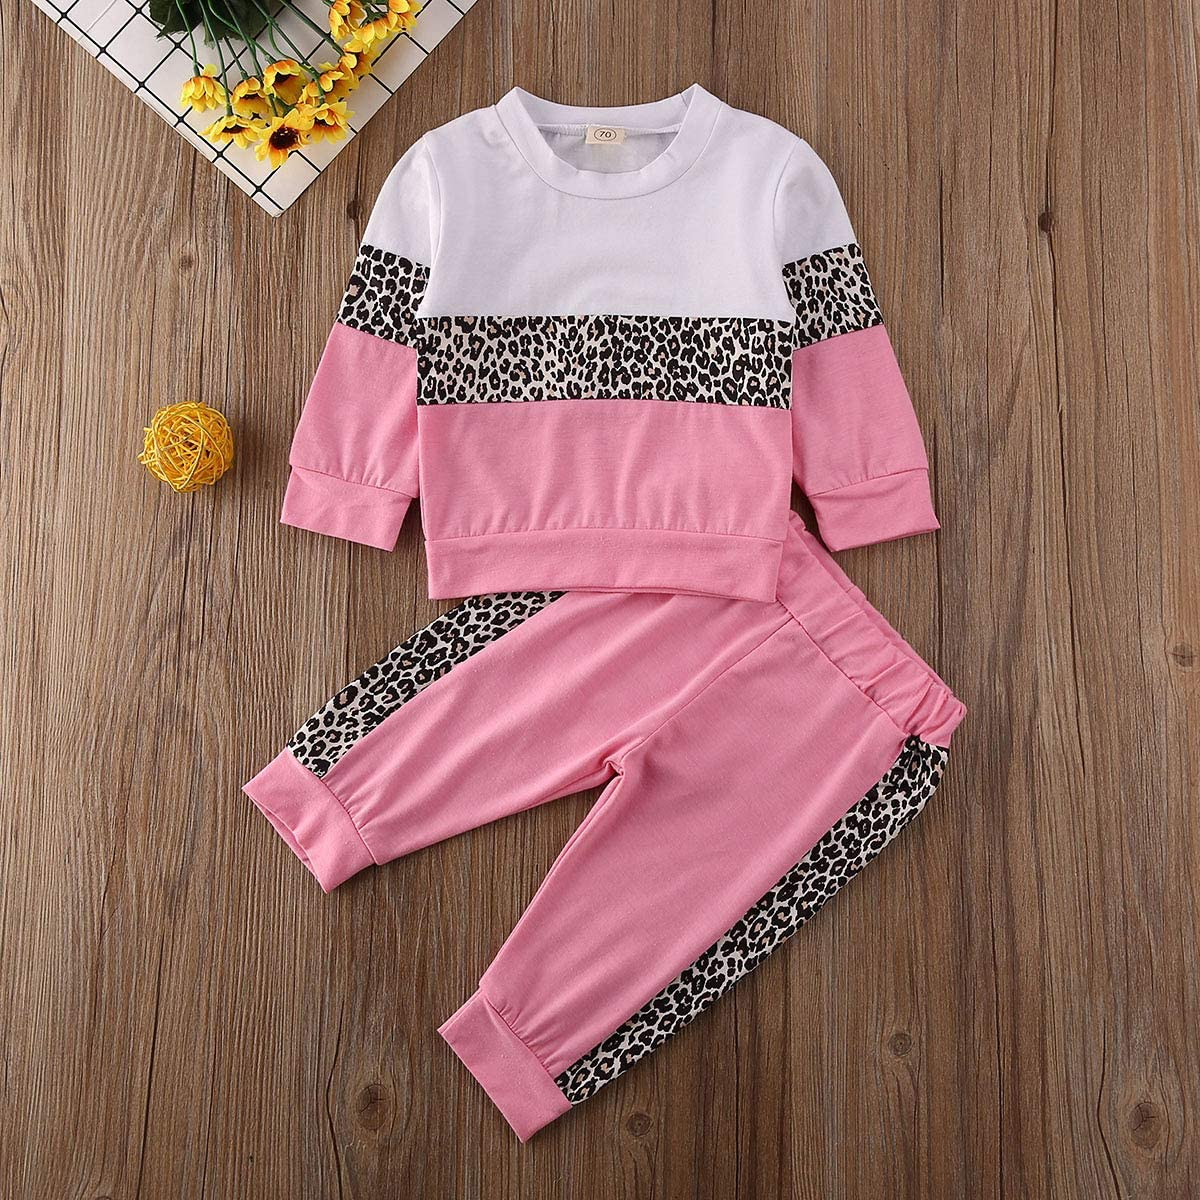 BOIZONTY Toddler Baby Girls Leopard Print Outfits Fall Winter Clothes Pullover Sweatshirt Tops Long Legging Pants Tracksuit